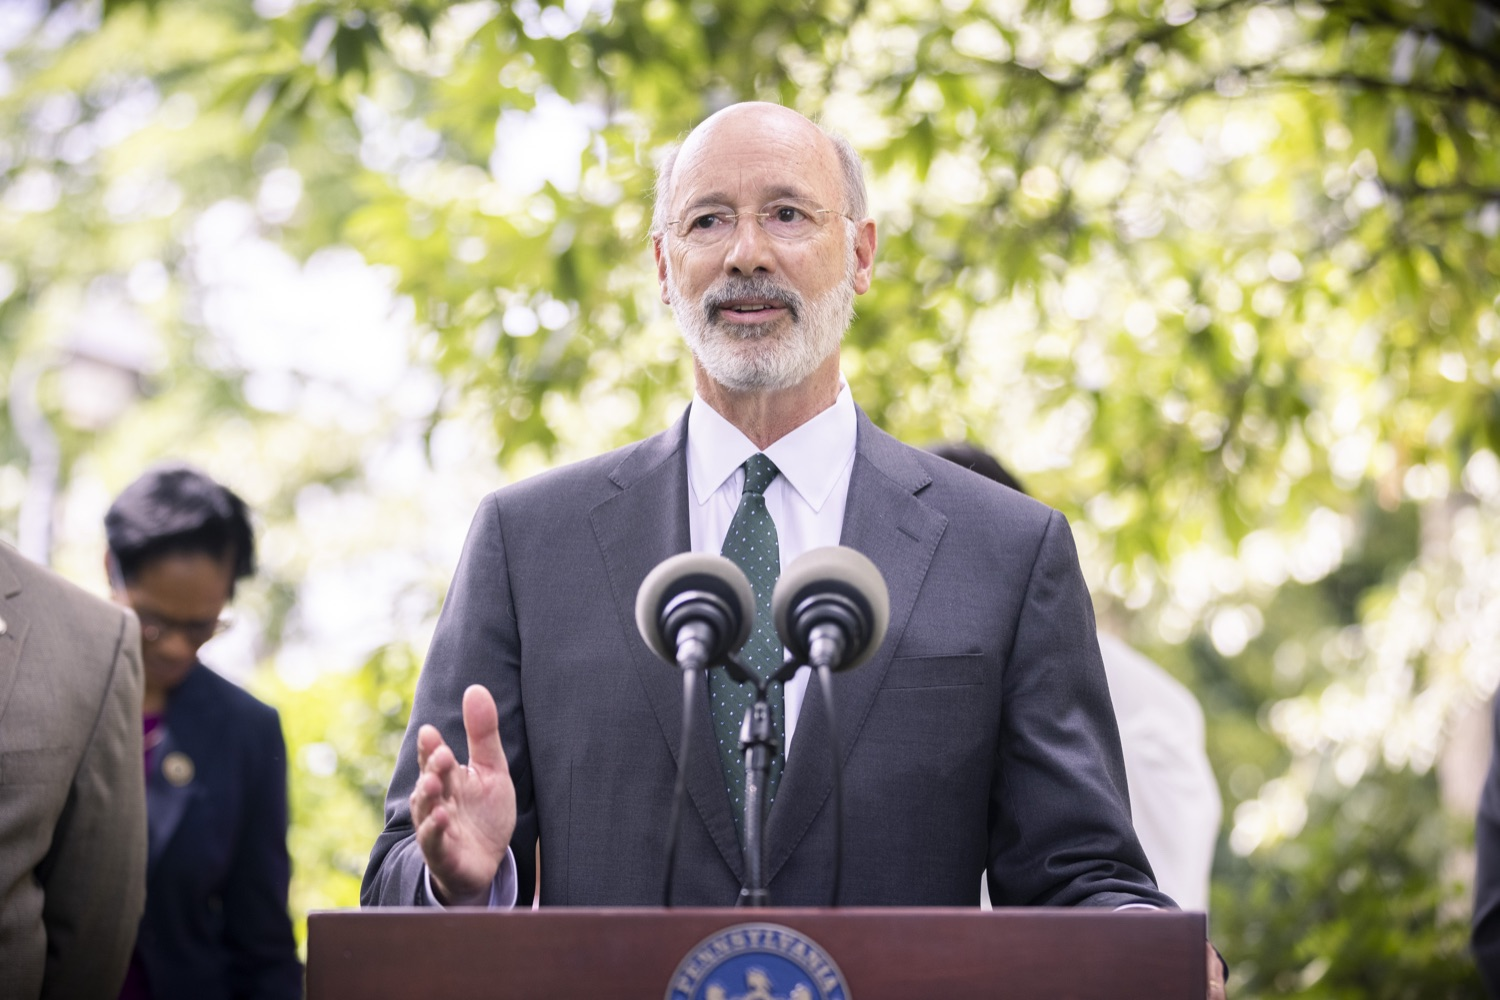 """<a href=""""https://filesource.wostreaming.net/commonwealthofpa/photo/18819_gov_reprodRights_dz_001.jpg"""" target=""""_blank"""">⇣Download Photo<br></a>Pennsylvania Governor Tom Wolf speaking with the press. Governor Wolf will discuss proposed anti-choice legislation that is moving through the House of Representatives and reaffirm that he will veto this damaging legislation.  JUNE 10, 2021 - PHILADELPHIA, PA"""